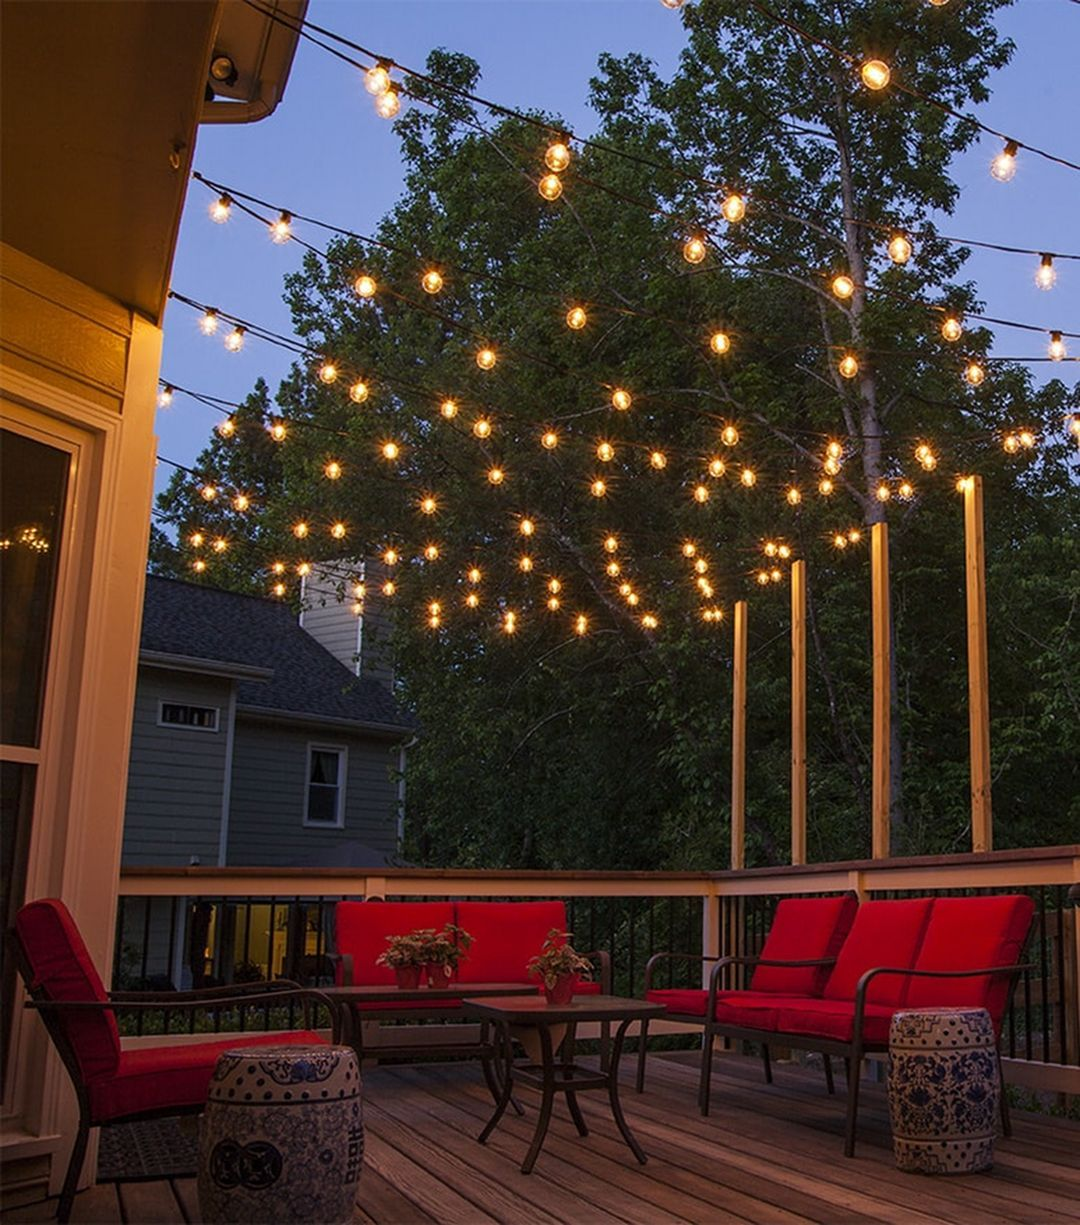 15 Wonderful Diy Backyard Lighting Ideas For Small Party At Night With Your Family Hanging Patio Lights Backyard Decor Backyard Lighting